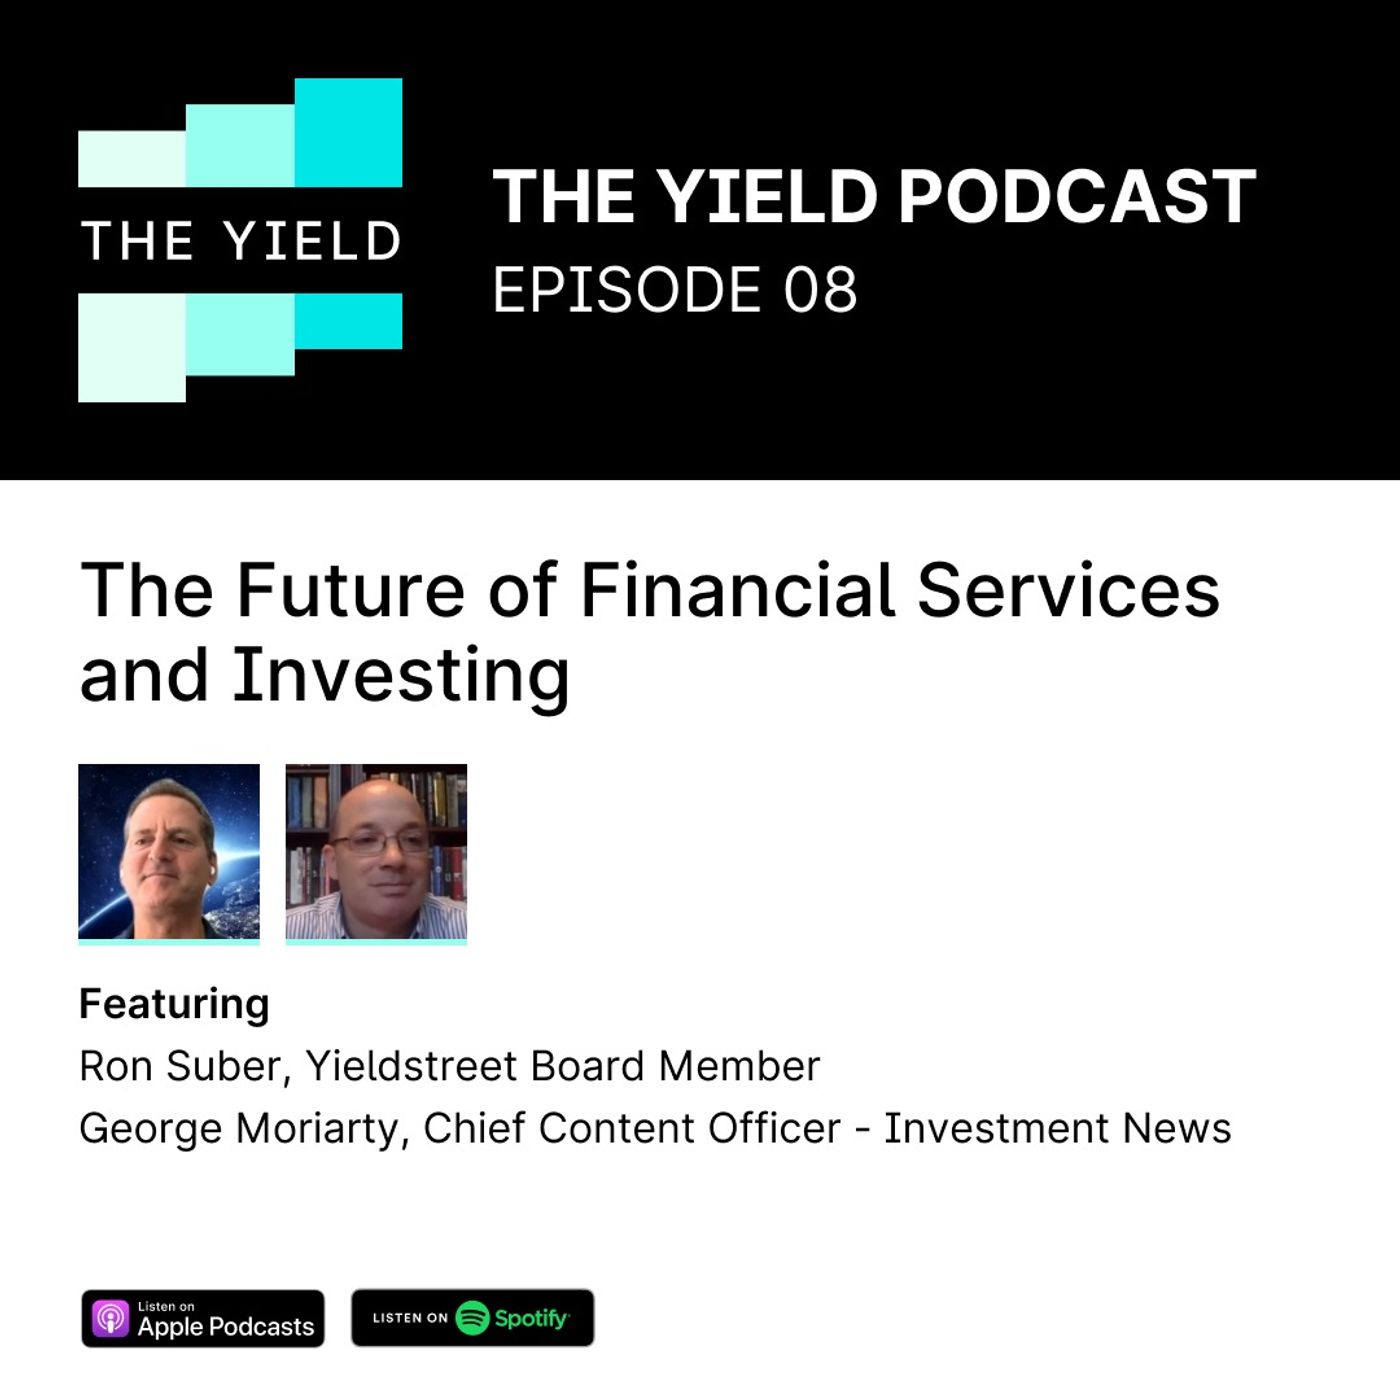 The Future of Financial Services and Investing